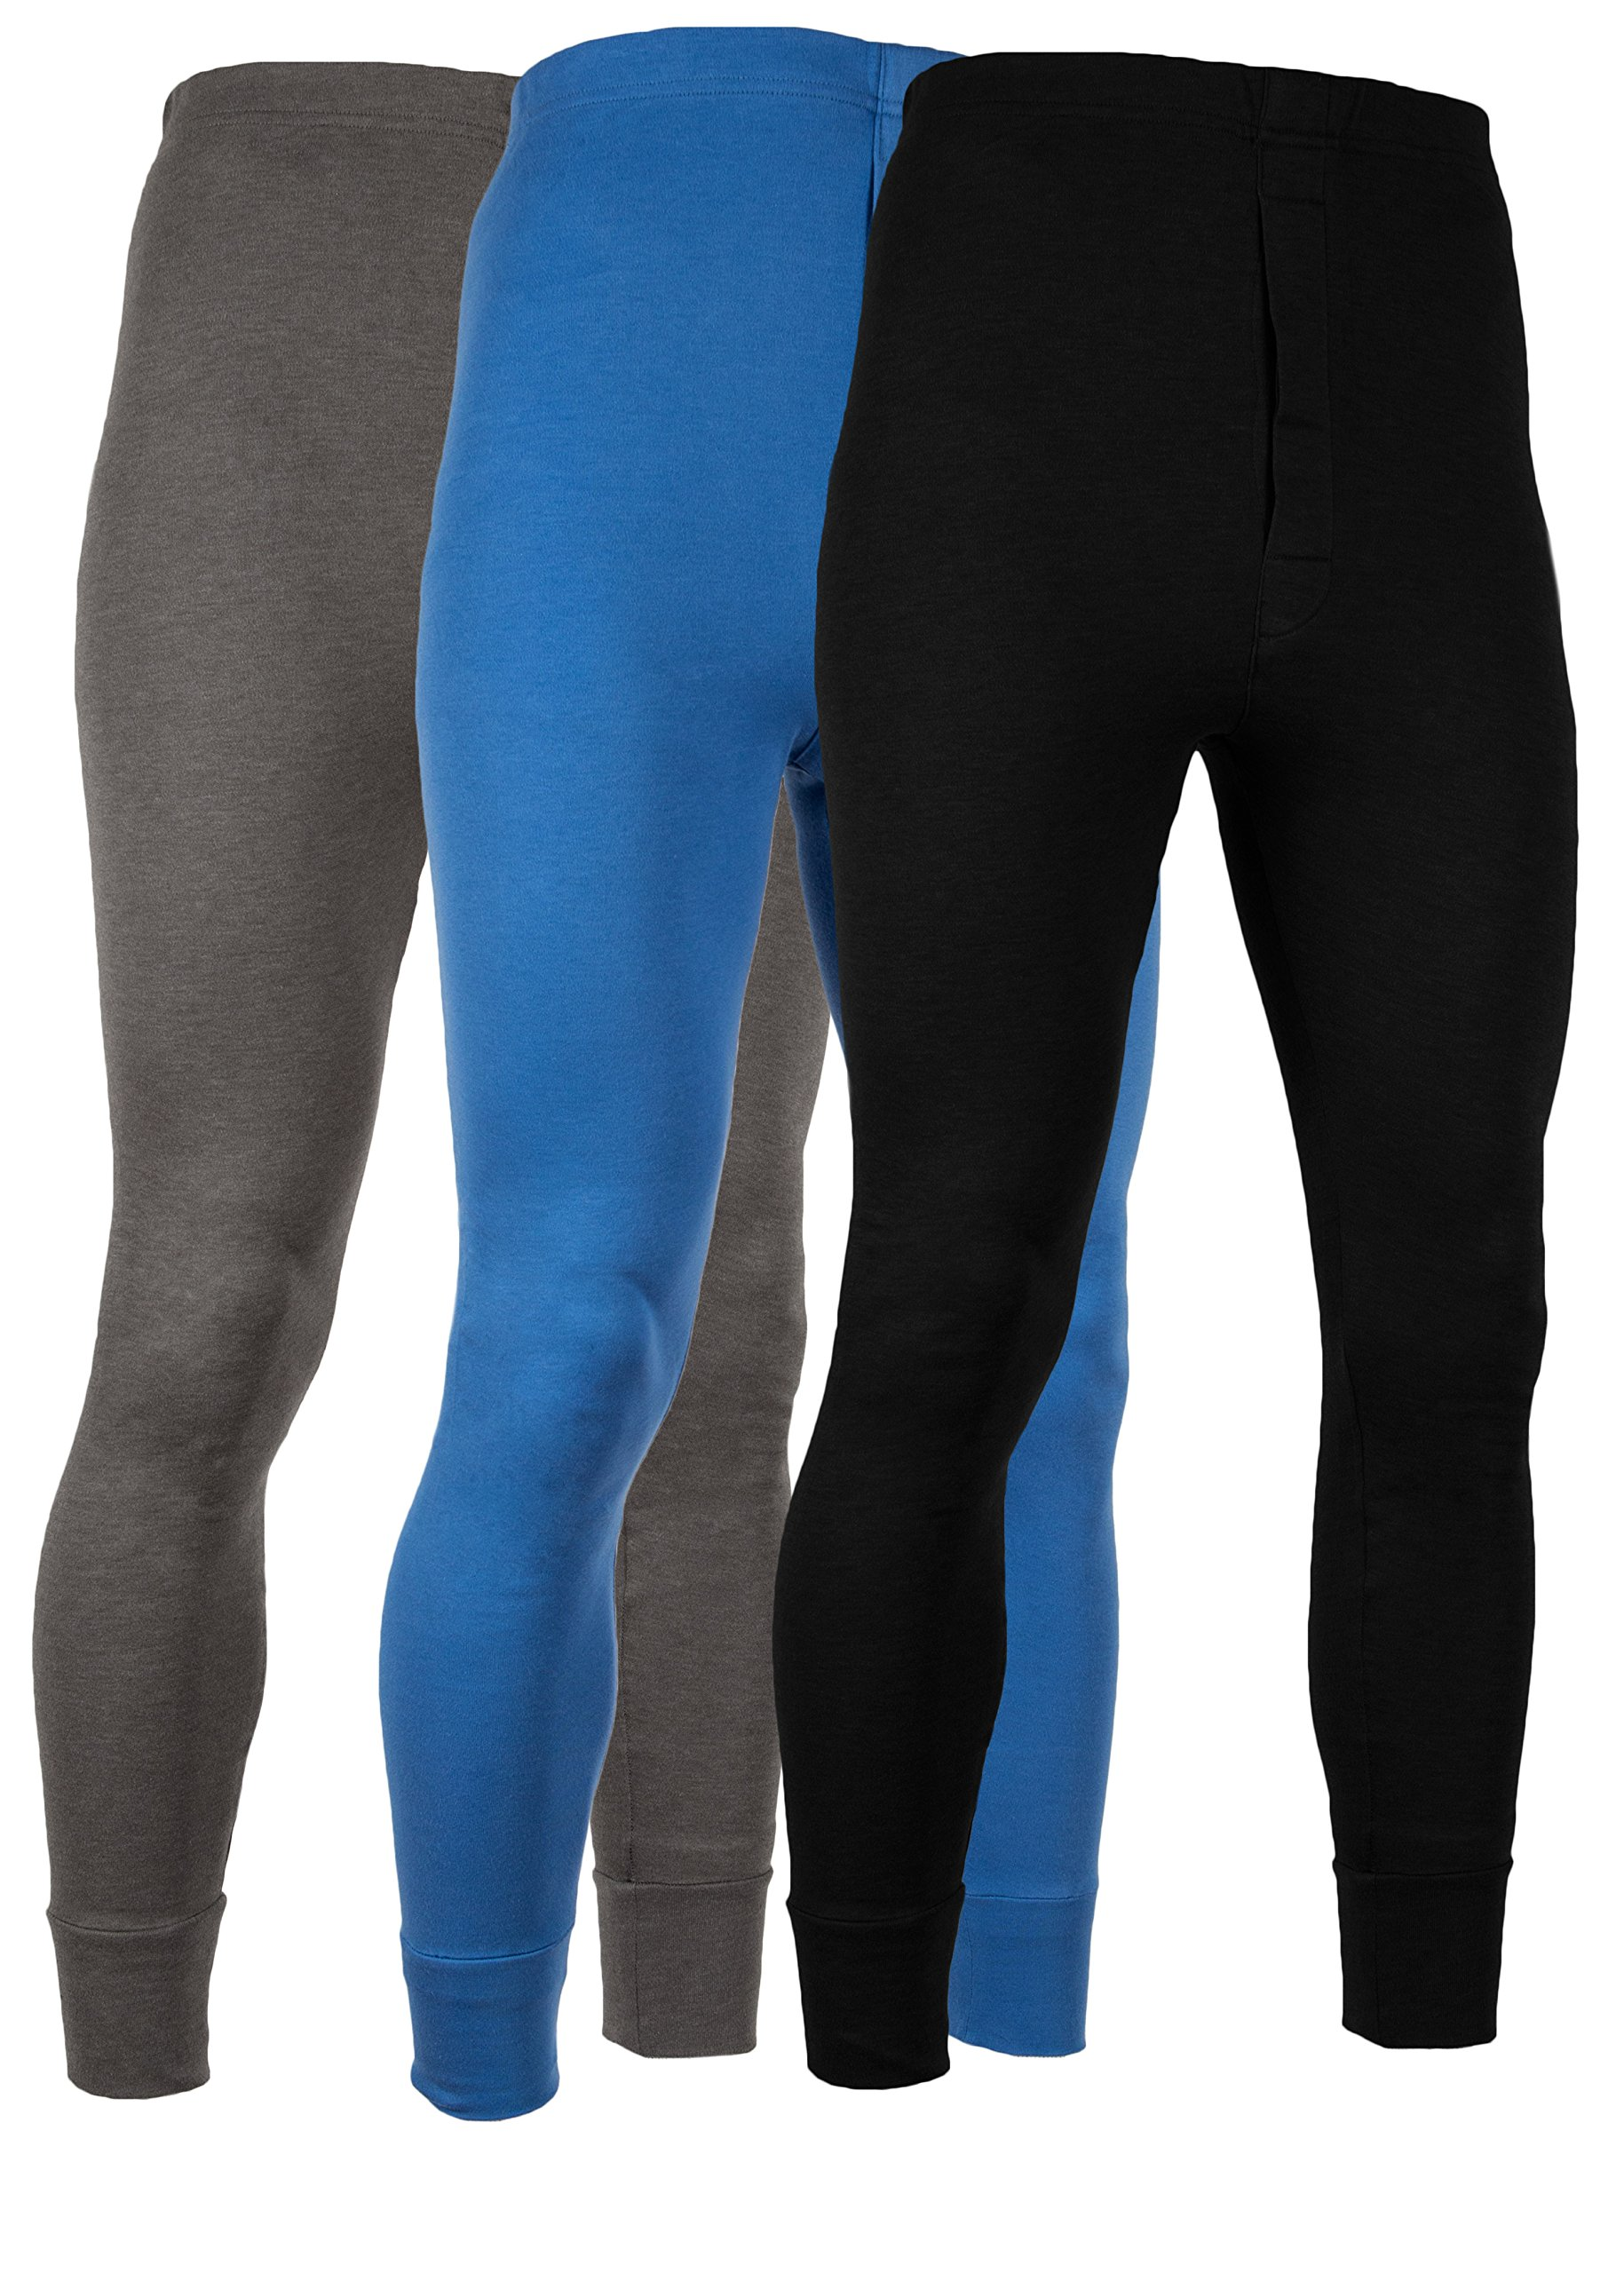 AMERICAN ACTIVE Men's Long Johns Thermal Base Layer Pants 100% Cotton Fleece Lined Underwear -Pack of 3 (3 Pack - Denim/Charcoal/Black, Large) by AMERICAN ACTIVE